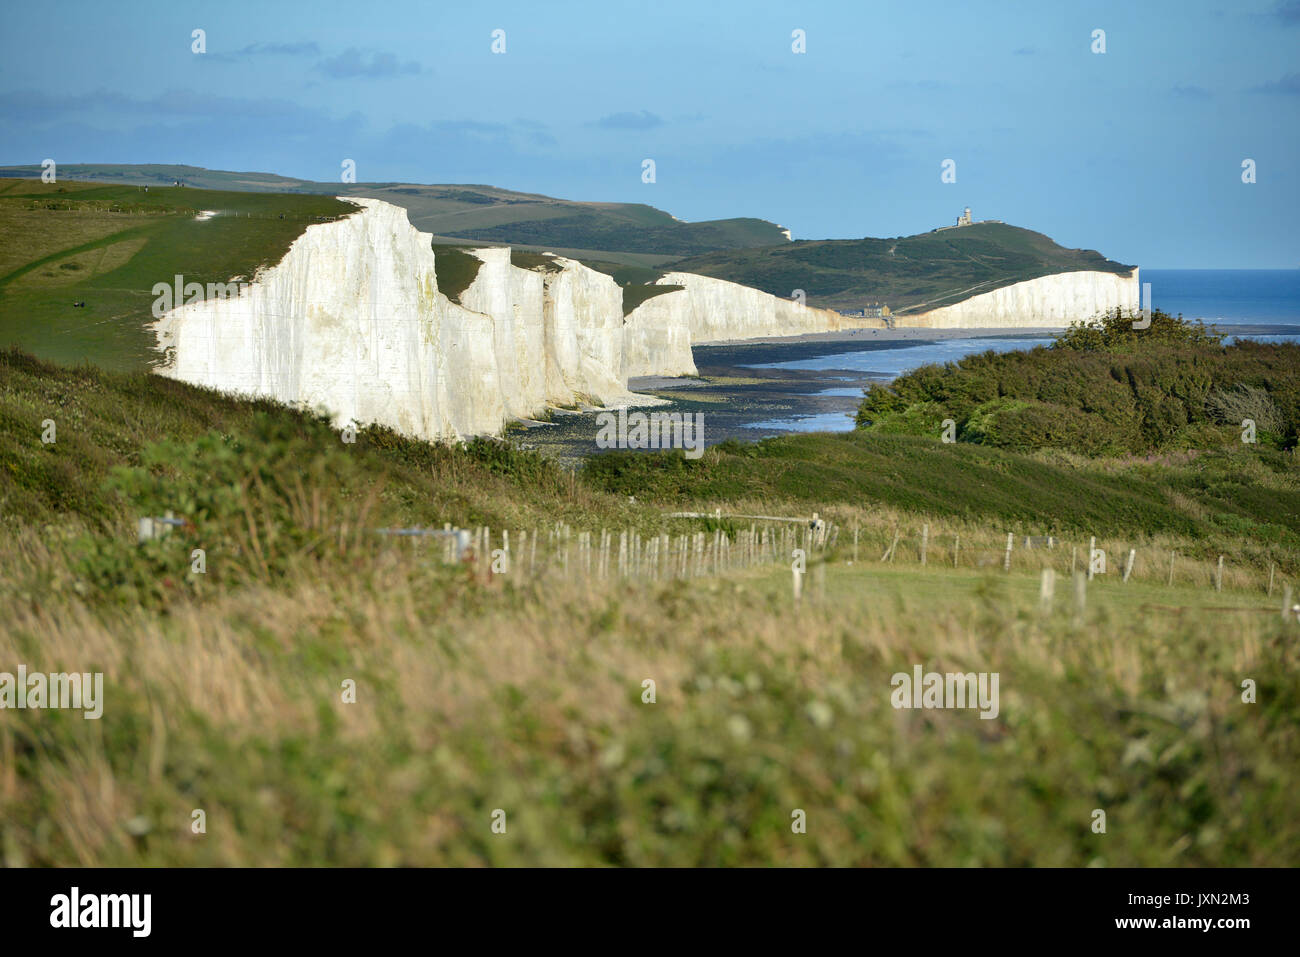 Sunset at the iconic Seven Sisters chalk cliffs, East Sussex, South Downs National Park - Stock Image